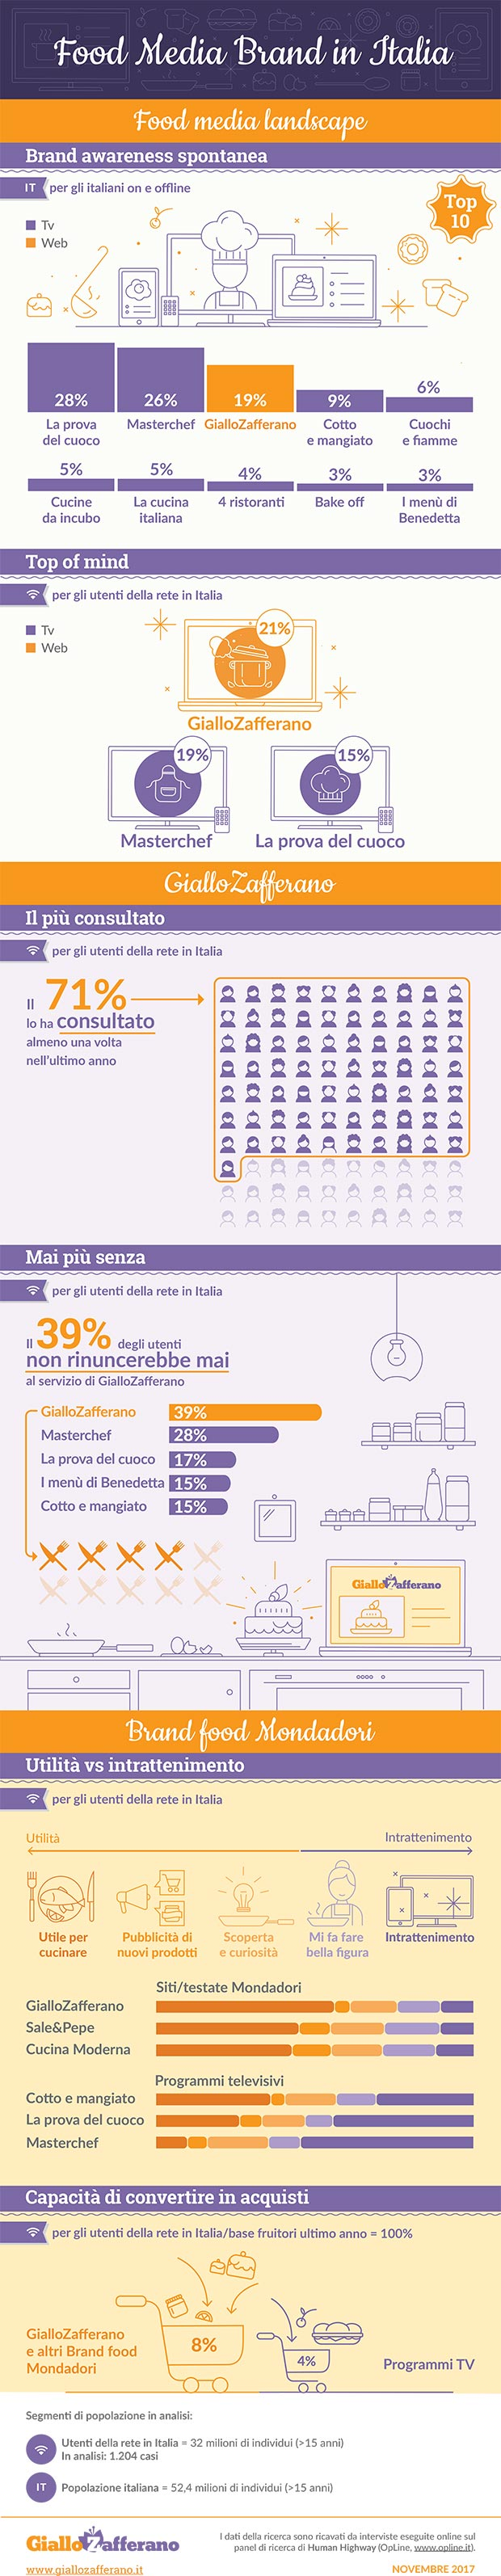 infografica-food-media-brands-giallozafferano